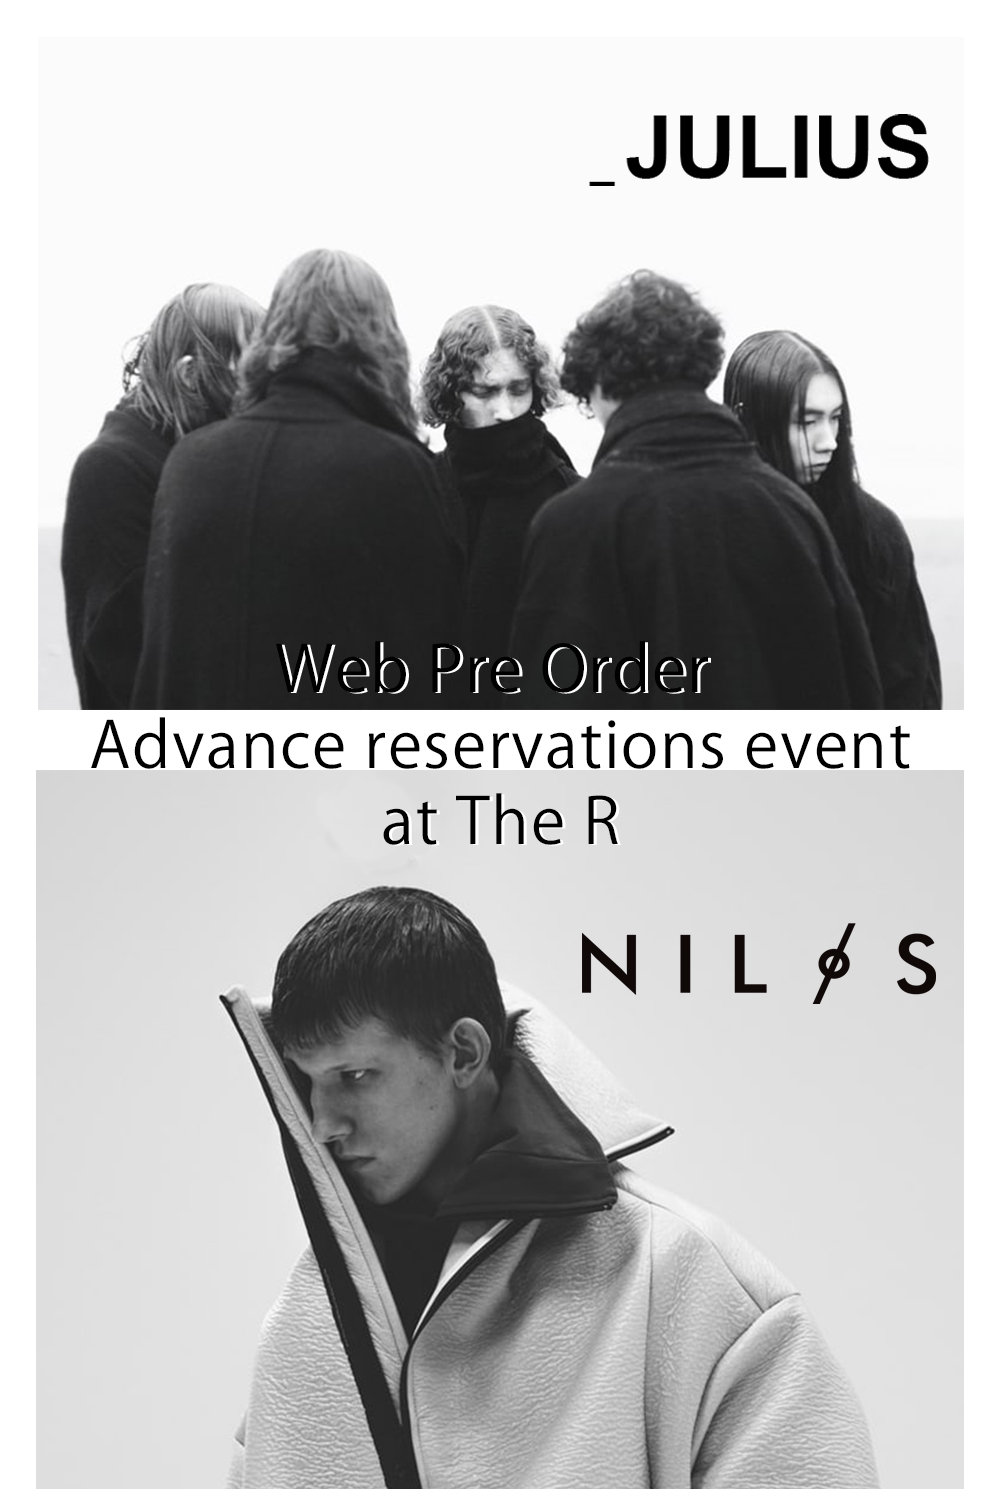 JULIUS & NILøS Web Pre Order & Advance reservations event at The R!!